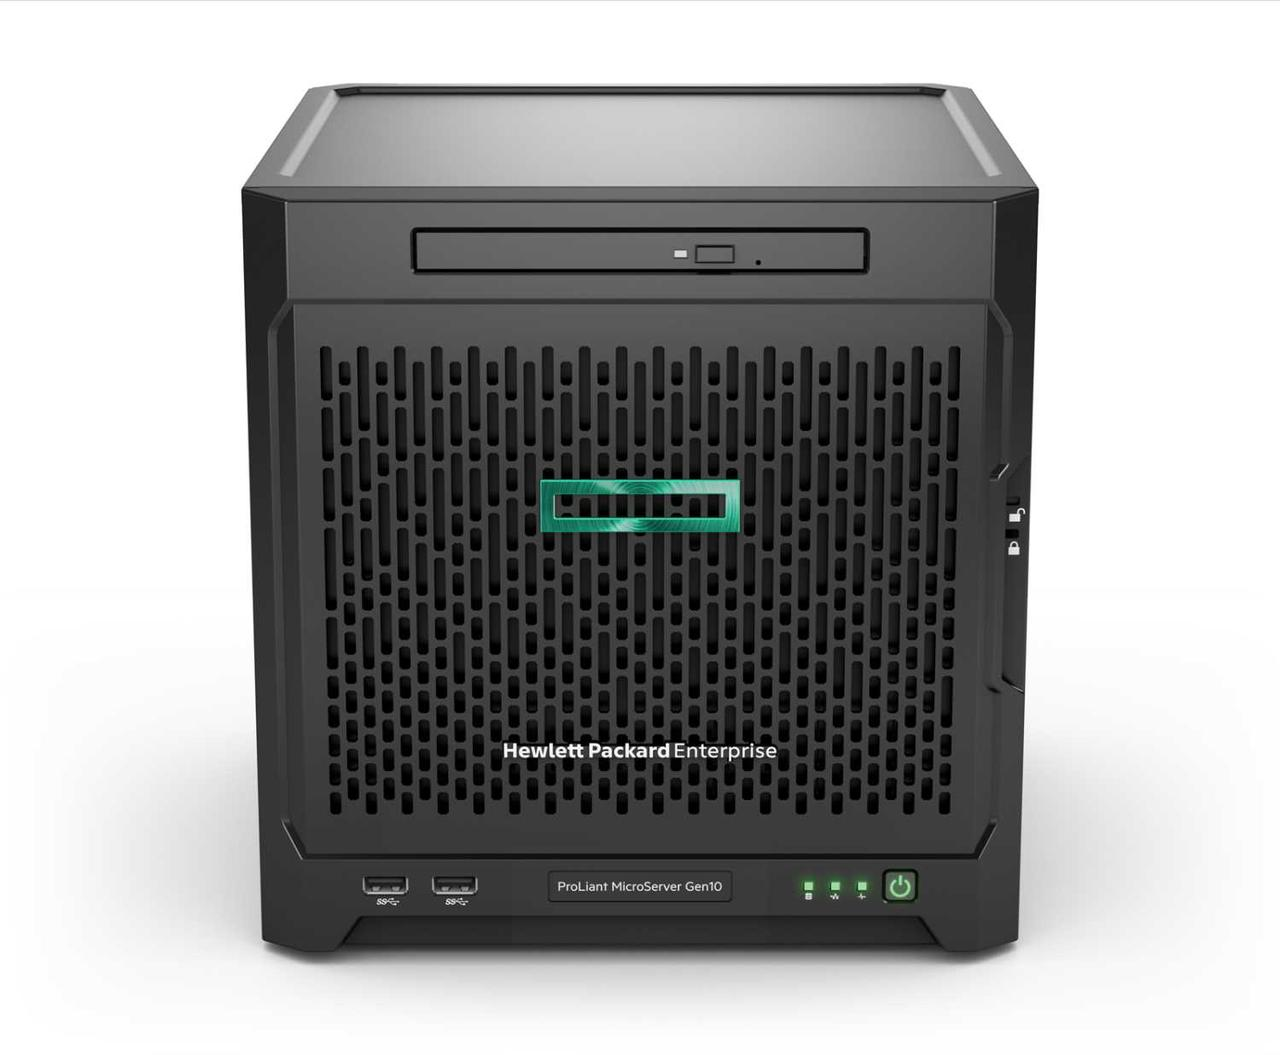 Сервер HPE ProLiant MicroServer Gen10 X3418 8G 4LFF 200W Performance Server (P07203-421) Golden Offer